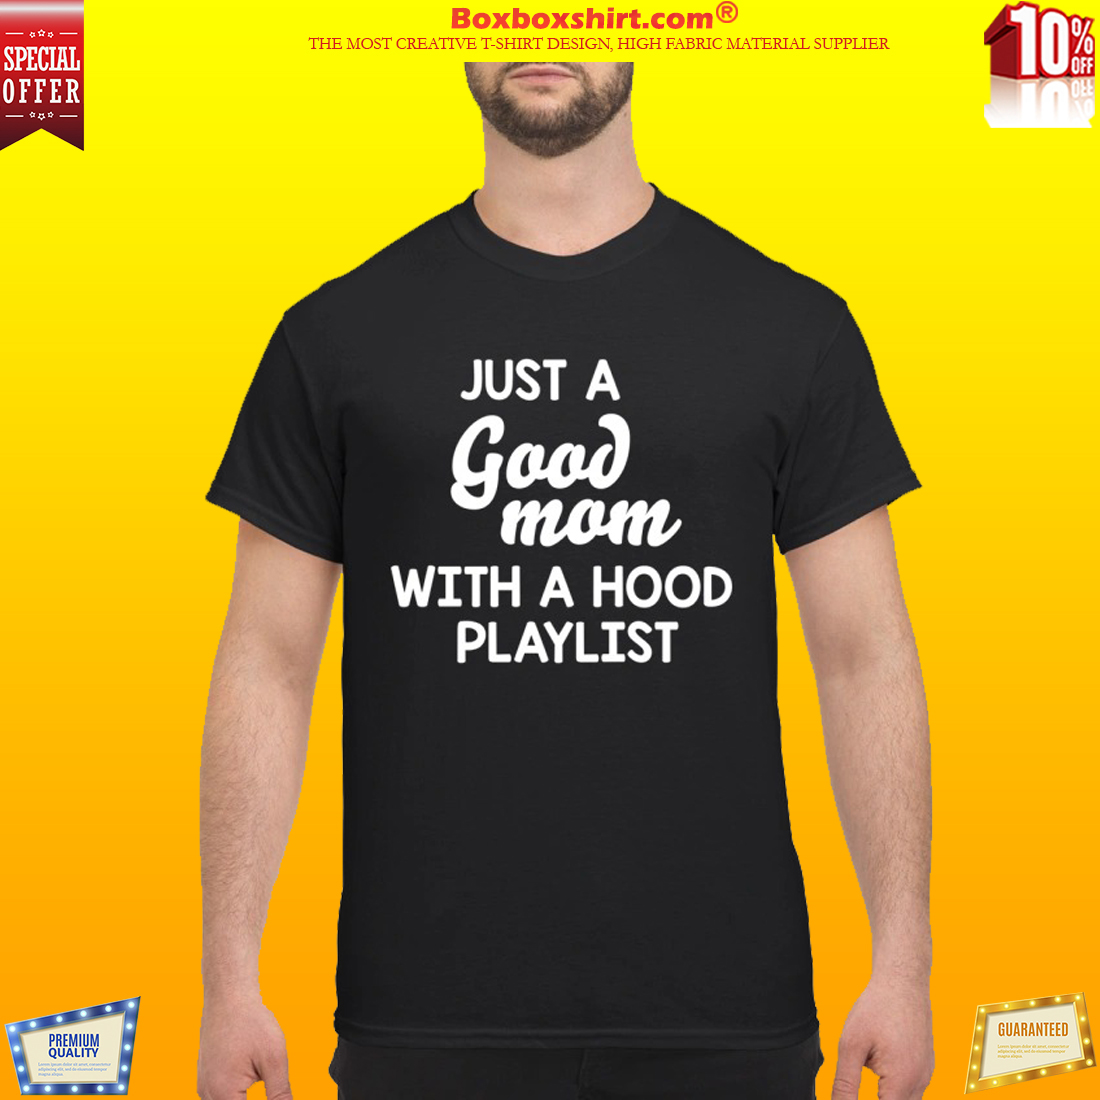 Just a good mom with a hood playlist classic shirt